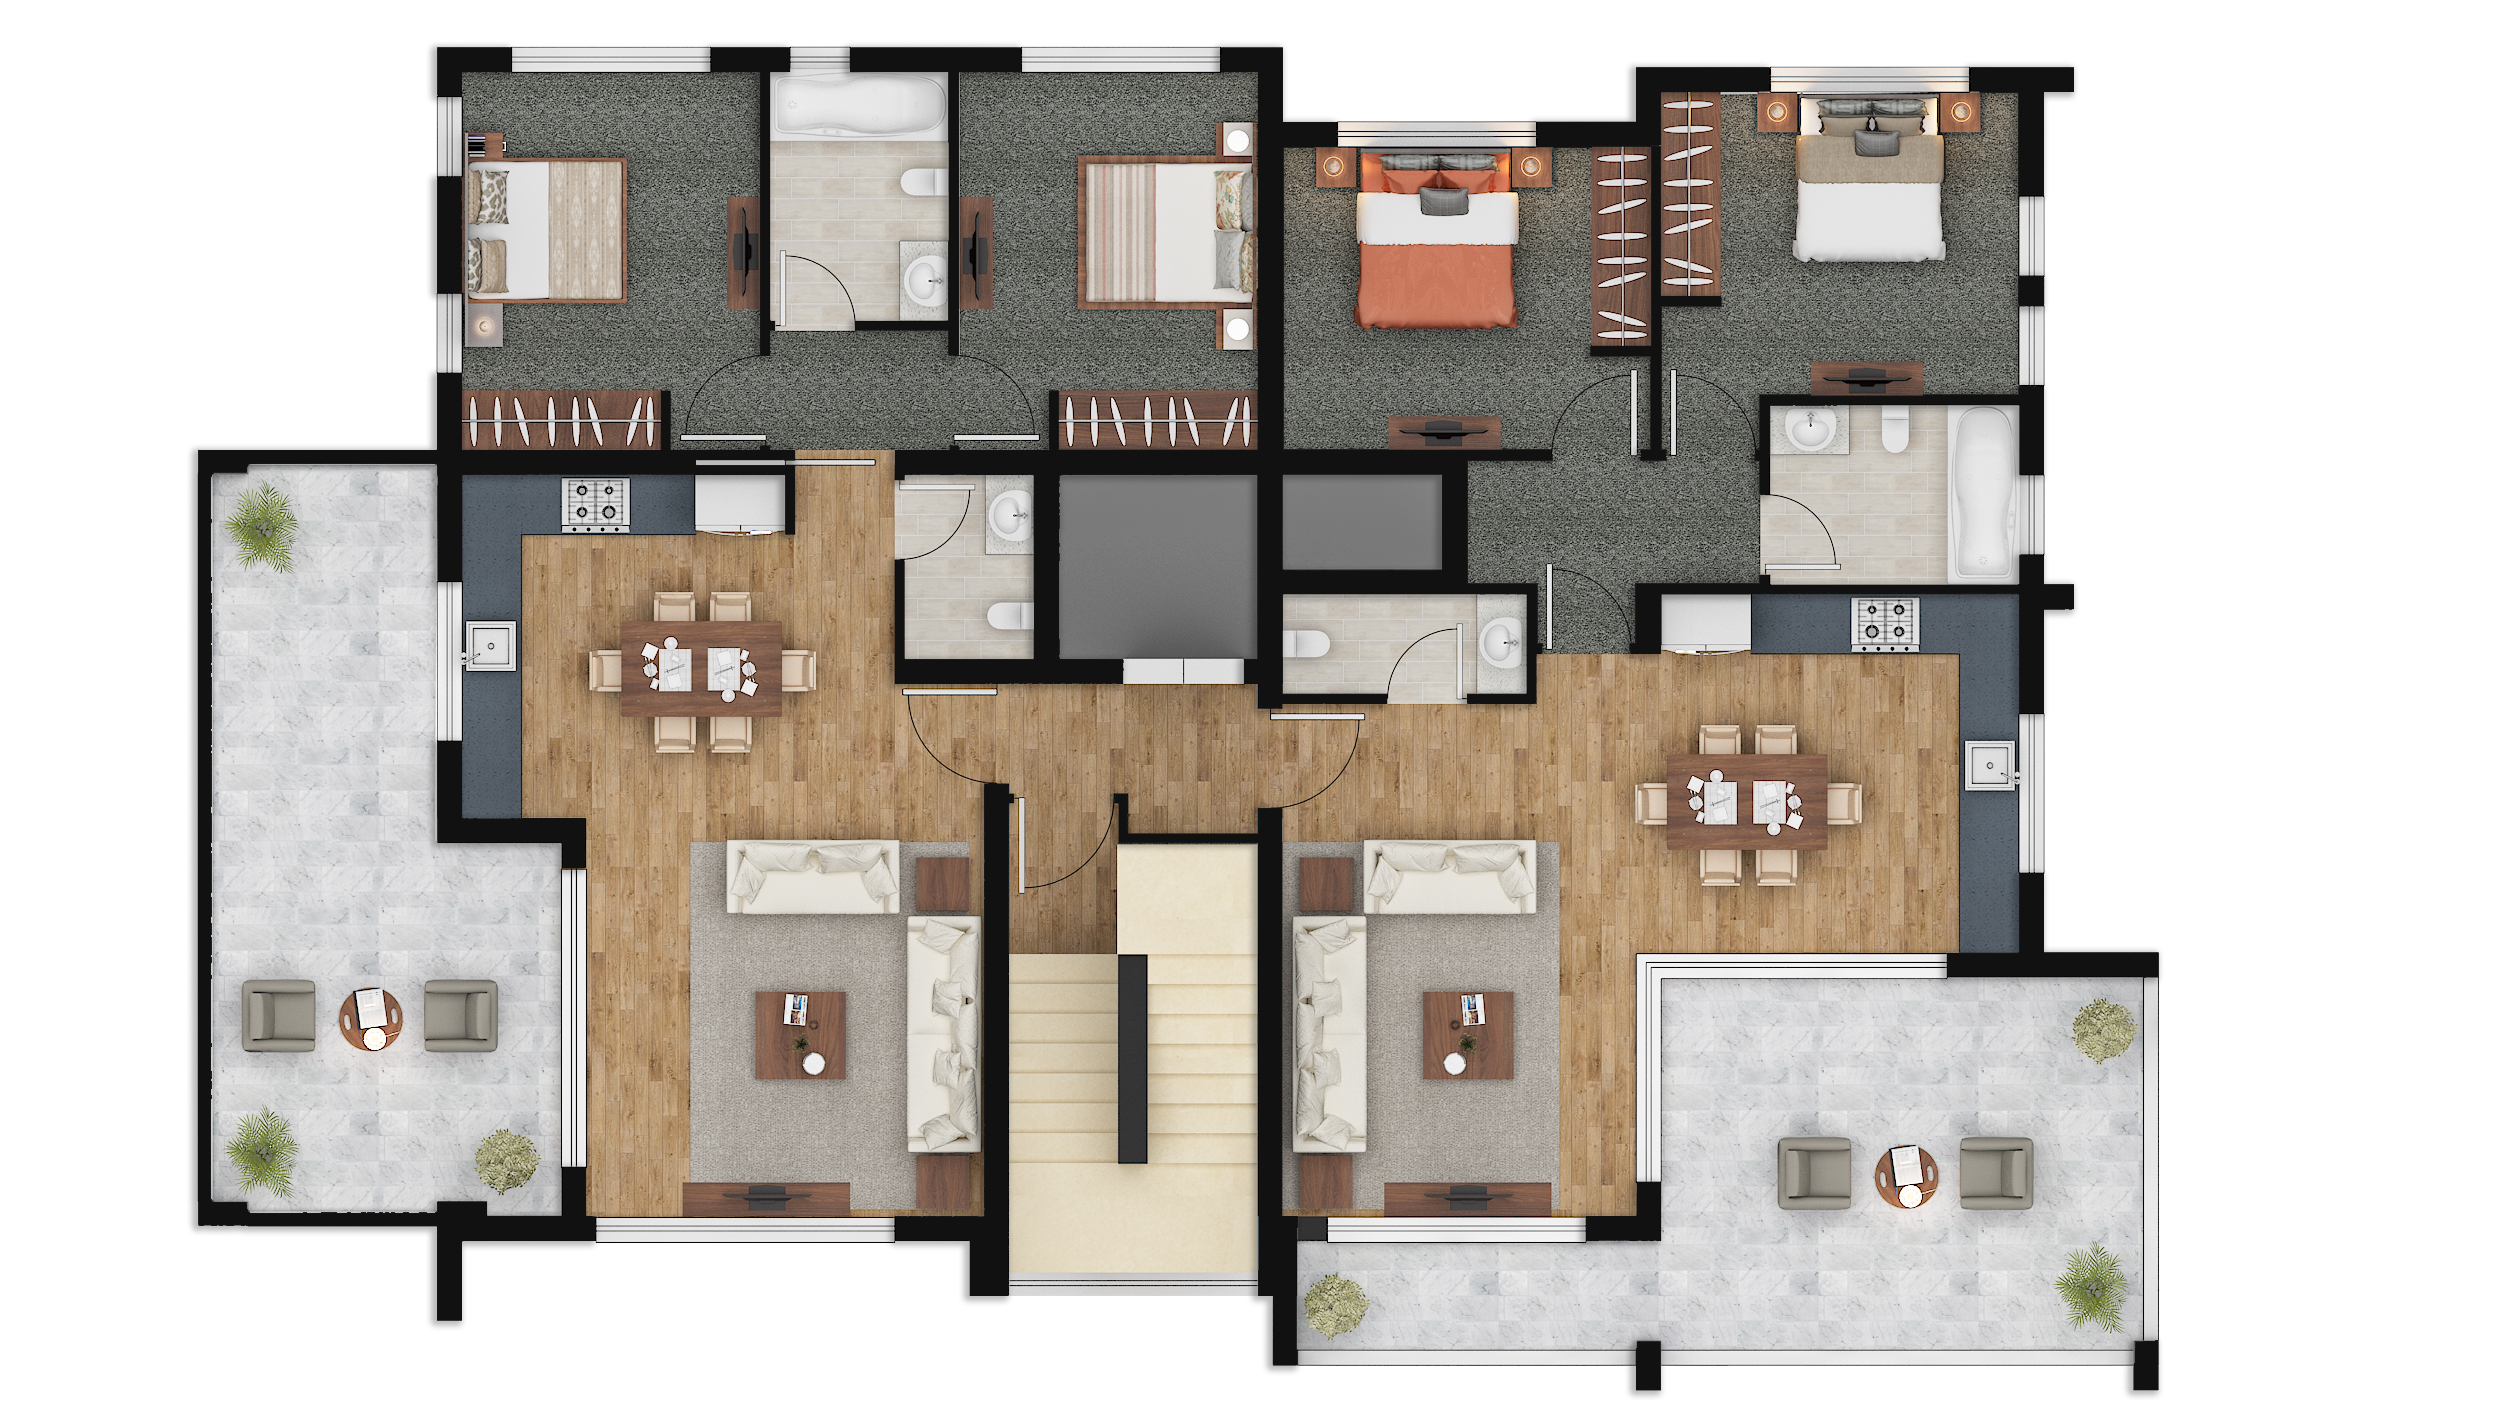 Color Floor Plan Rendering Photoshop Austin Texas For Property Marketing Plan Syncronia